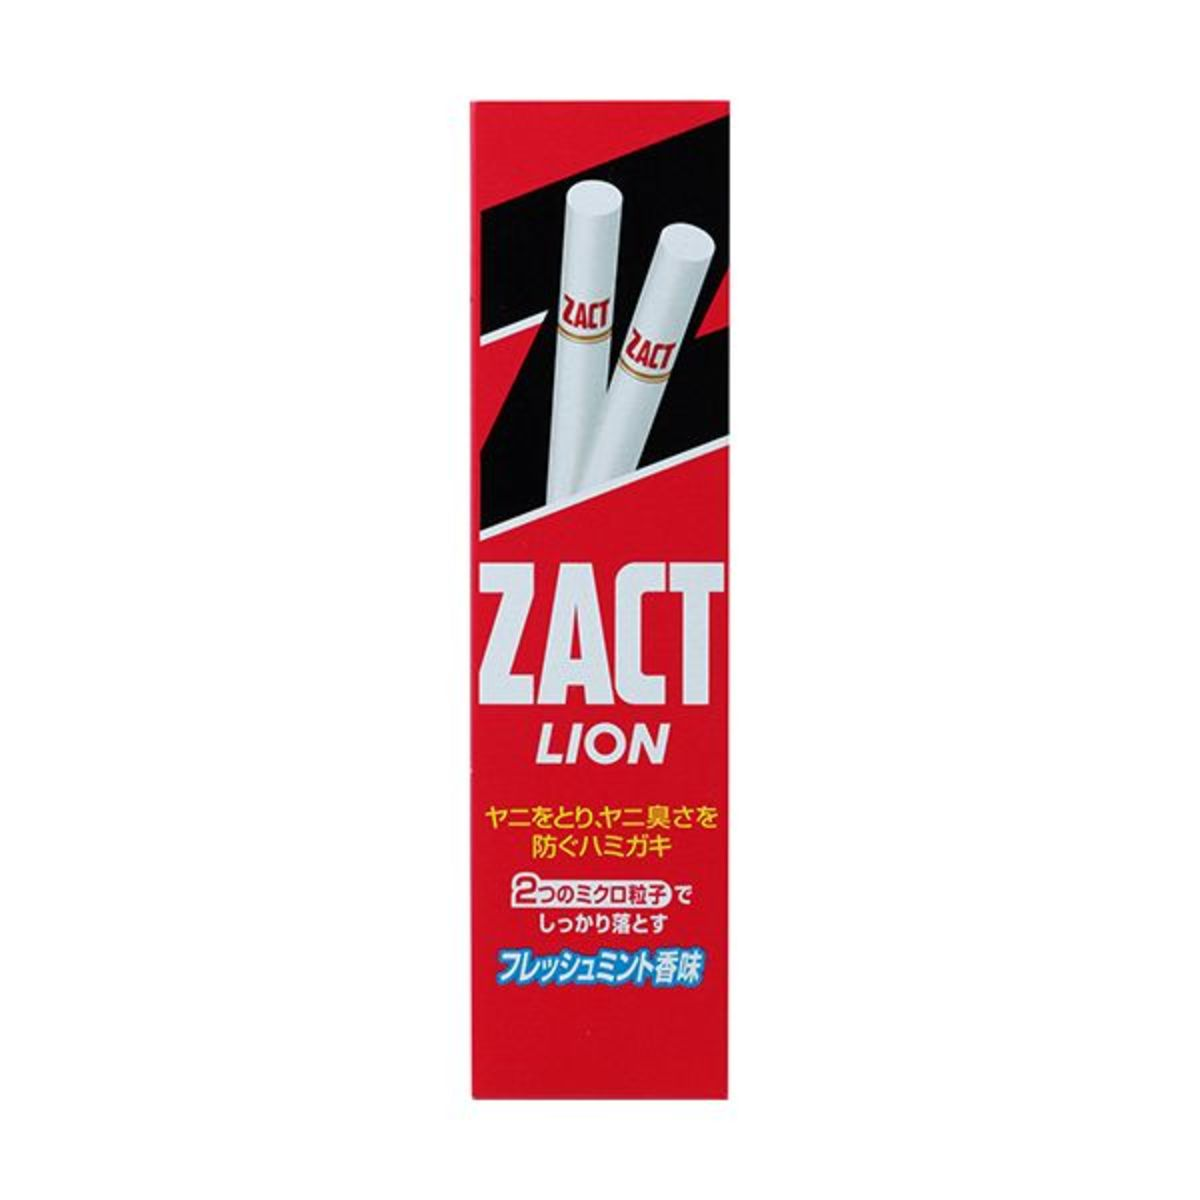 Zact Toothpaste for Smoker 150g